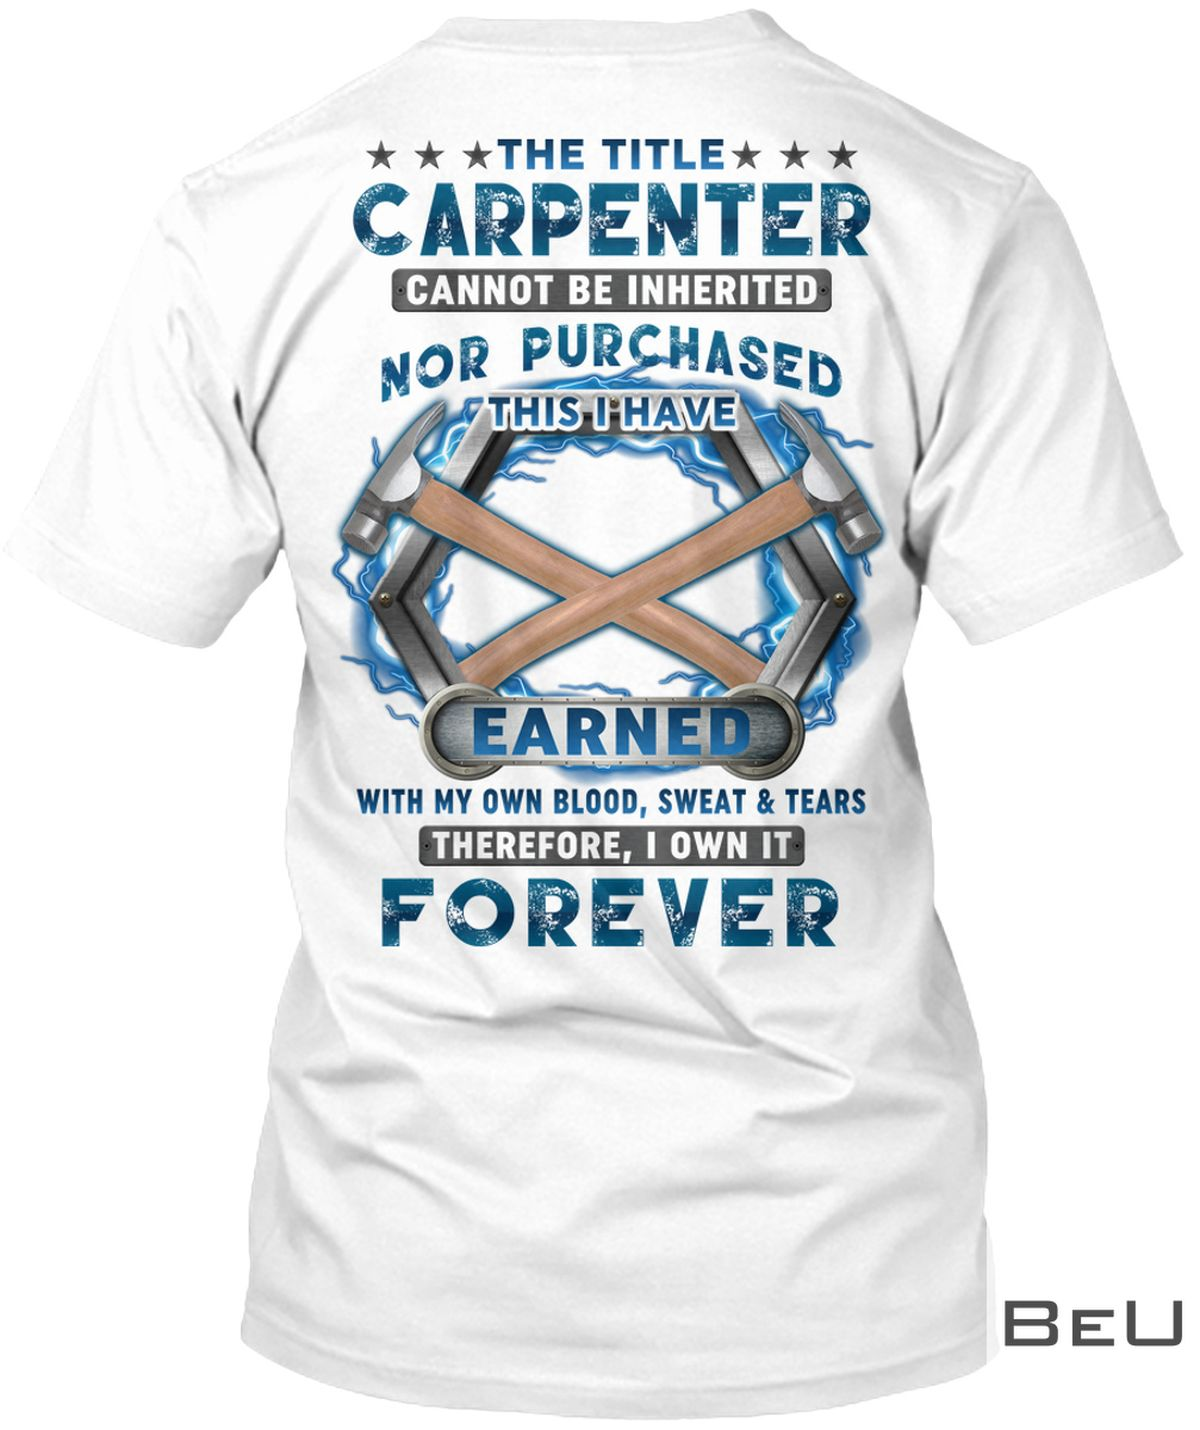 The Title Carpenter Cannot Be Inherited Nor Purchased This I Have Earned Shirt